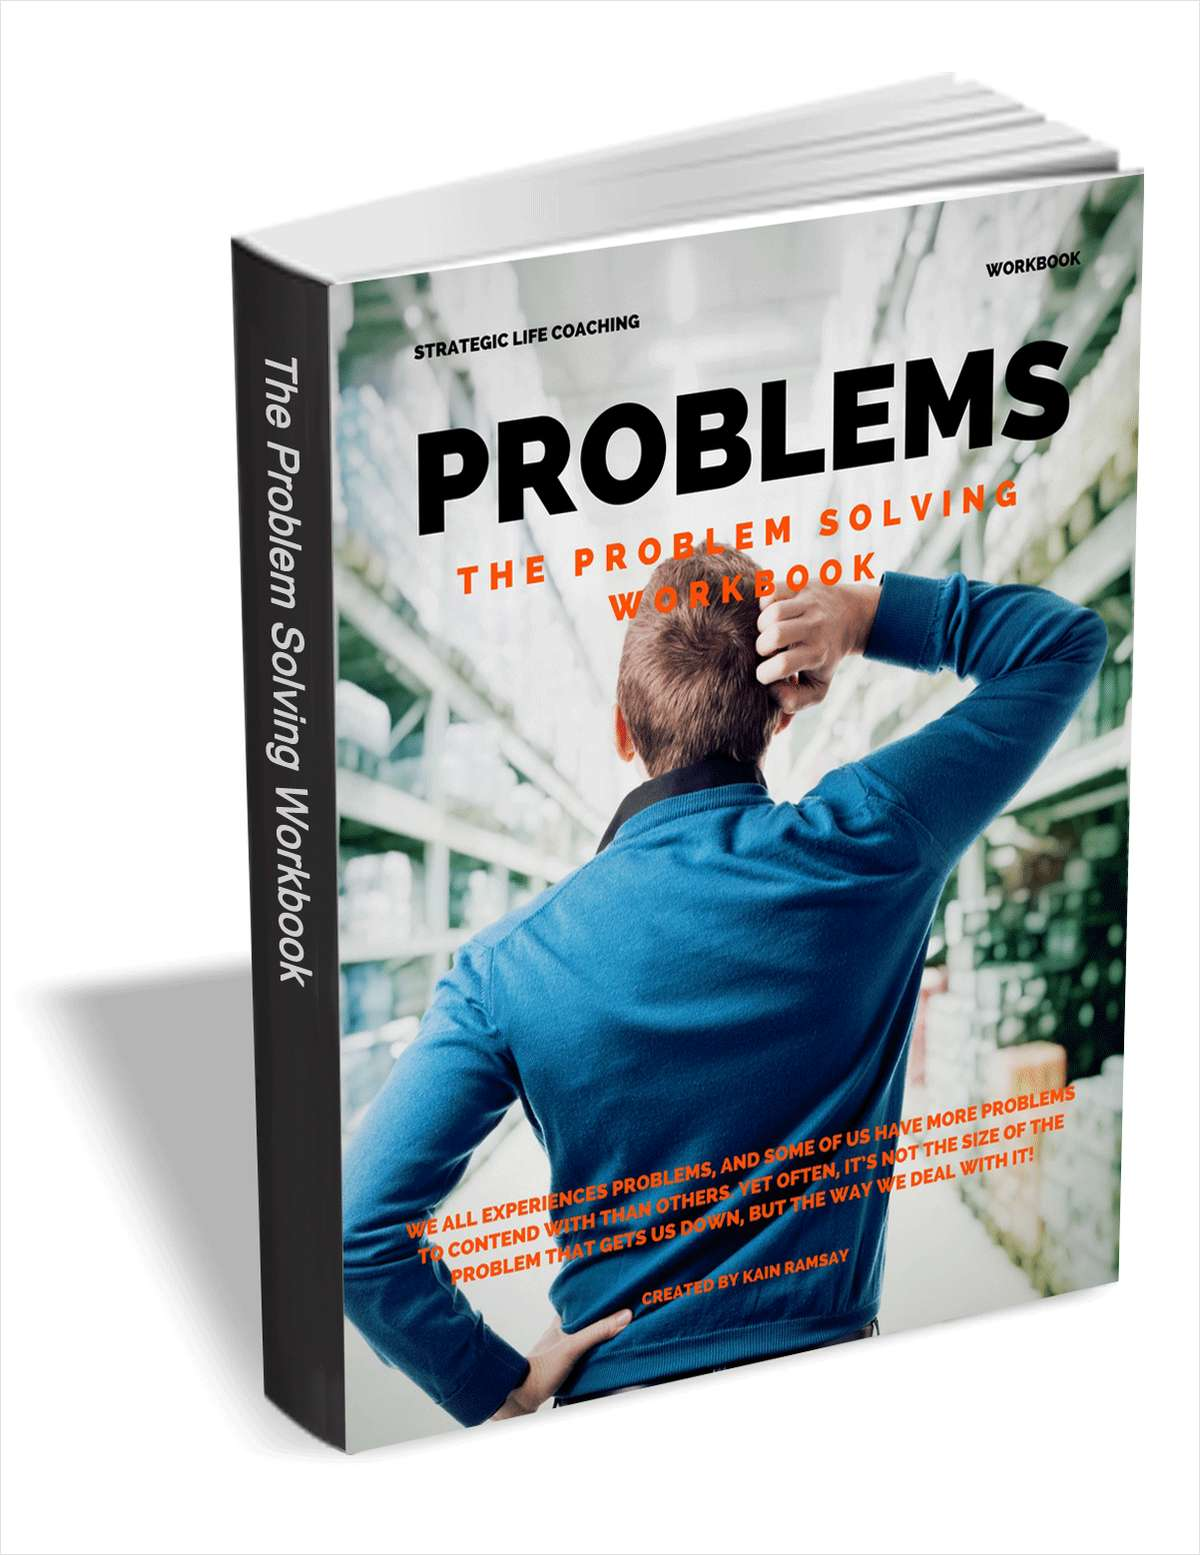 Problems - The Problem Solving Workbook